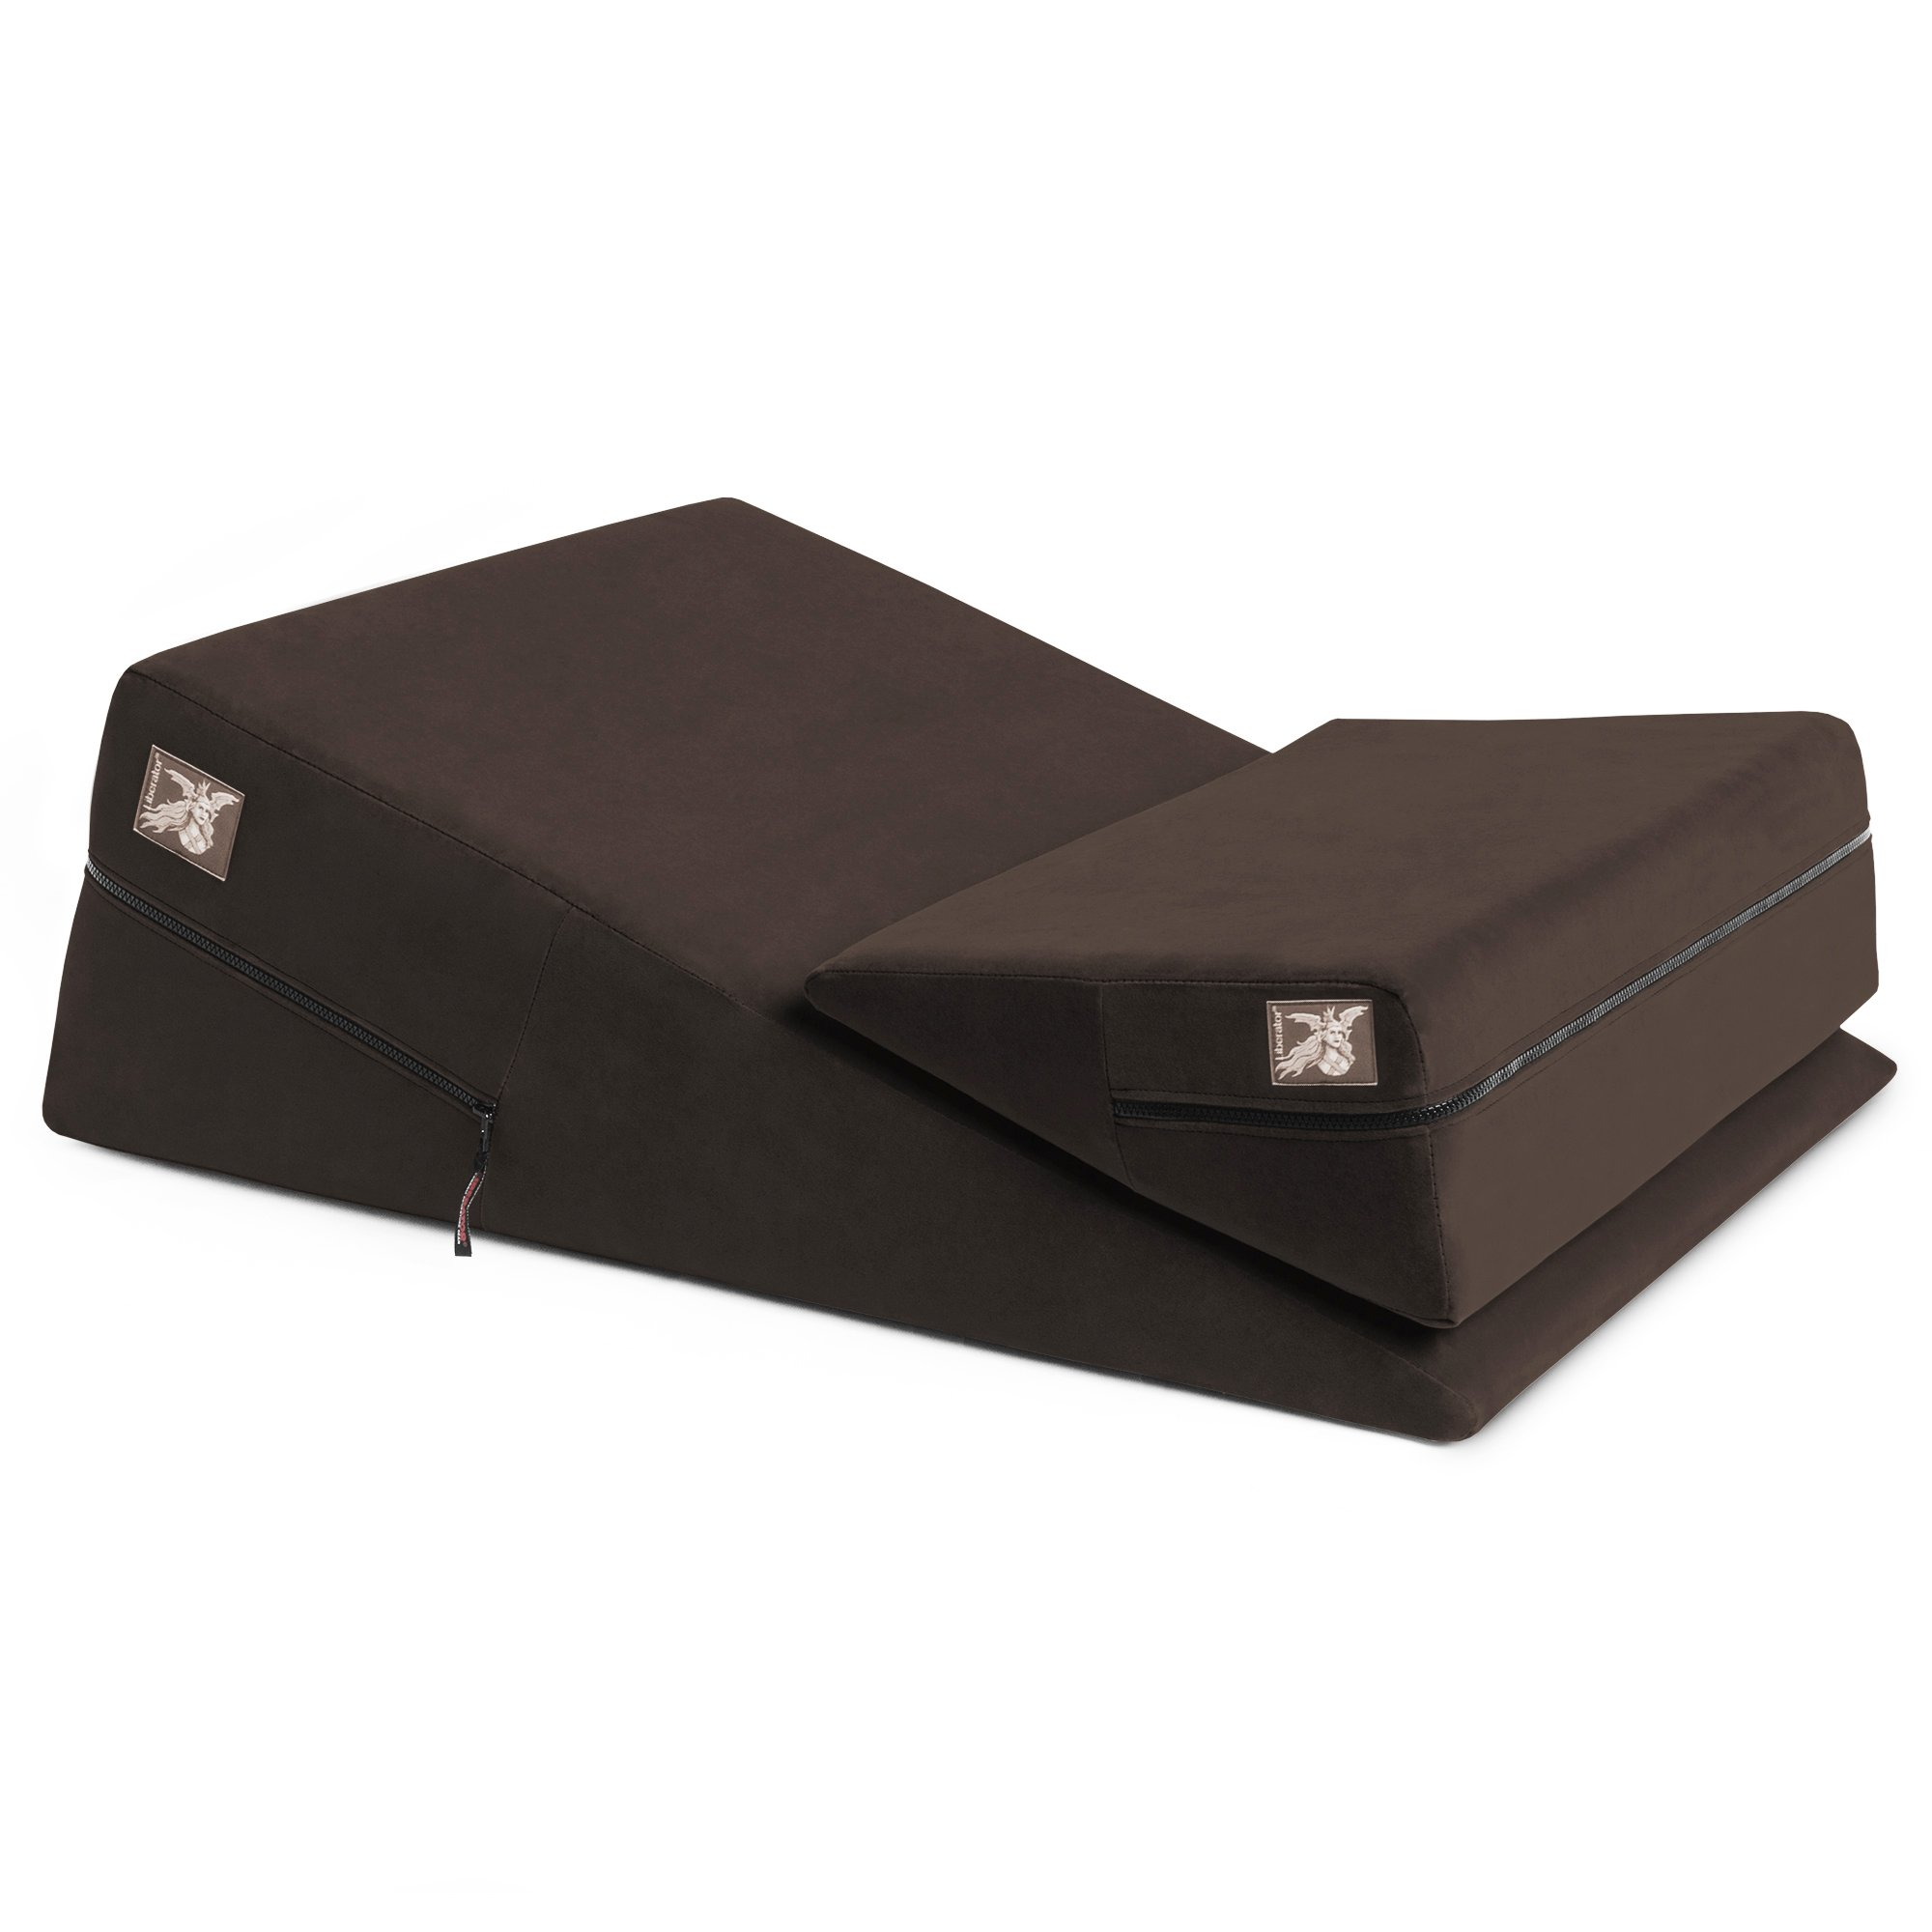 Liberator Wedge/Ramp Combo, Original, Chocolate Microfiber